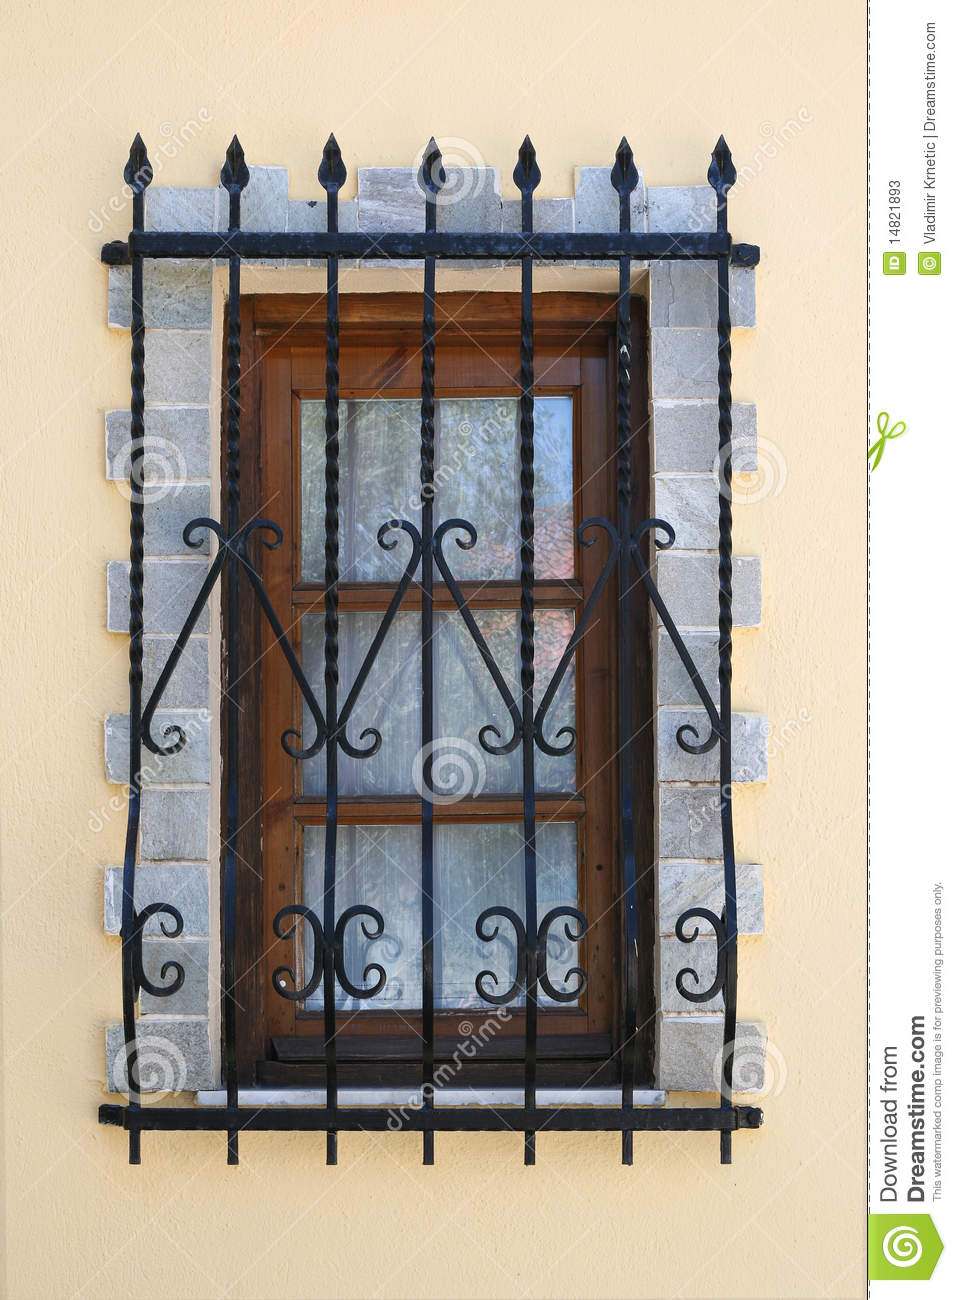 Window With Iron Security Bars Stock Image Image 14821893